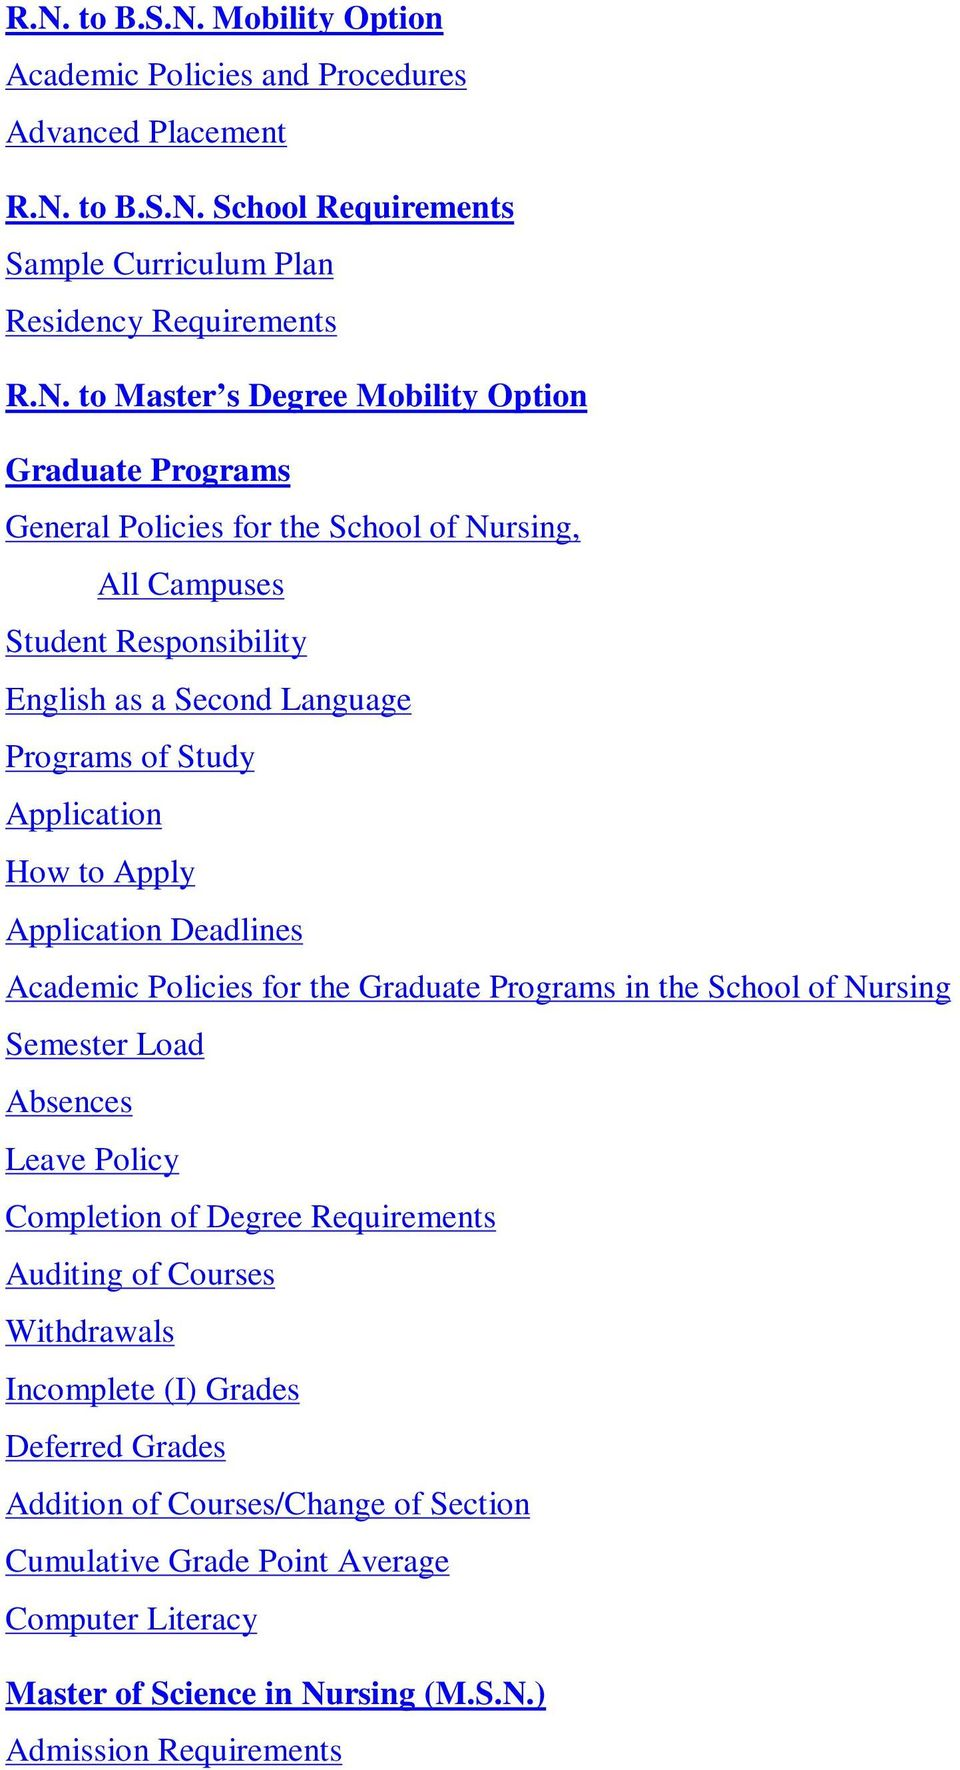 Application Deadlines Academic Policies for the Graduate Programs in the School of Nursing Semester Load Absences Leave Policy Completion of Degree Requirements Auditing of Courses